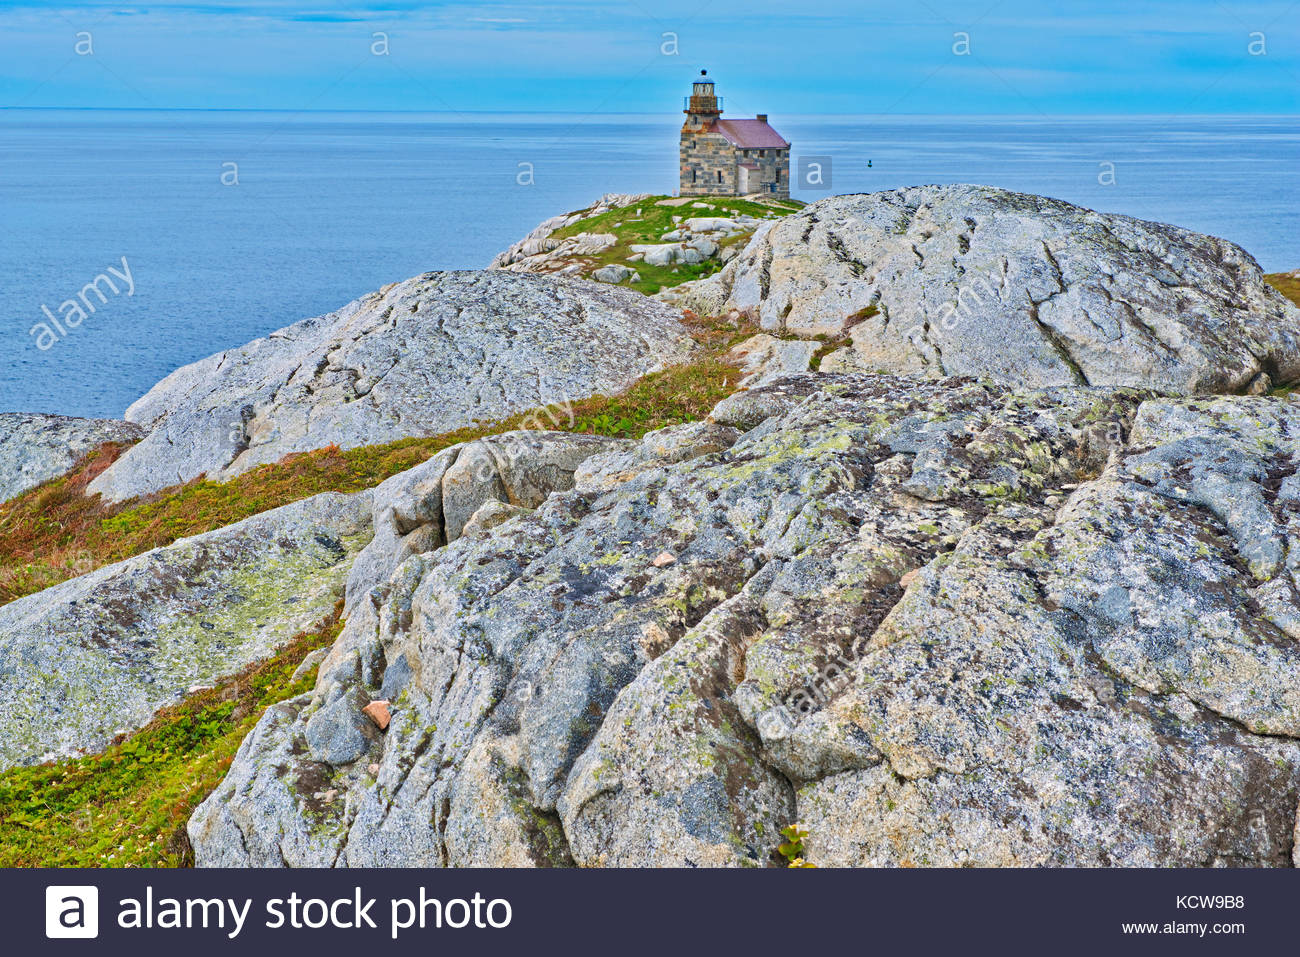 Kejimkujik National Park South Shore and Annapolis Valley, Rose Blanche Stock Photos & Rose Blanche Stock Images - Alamy